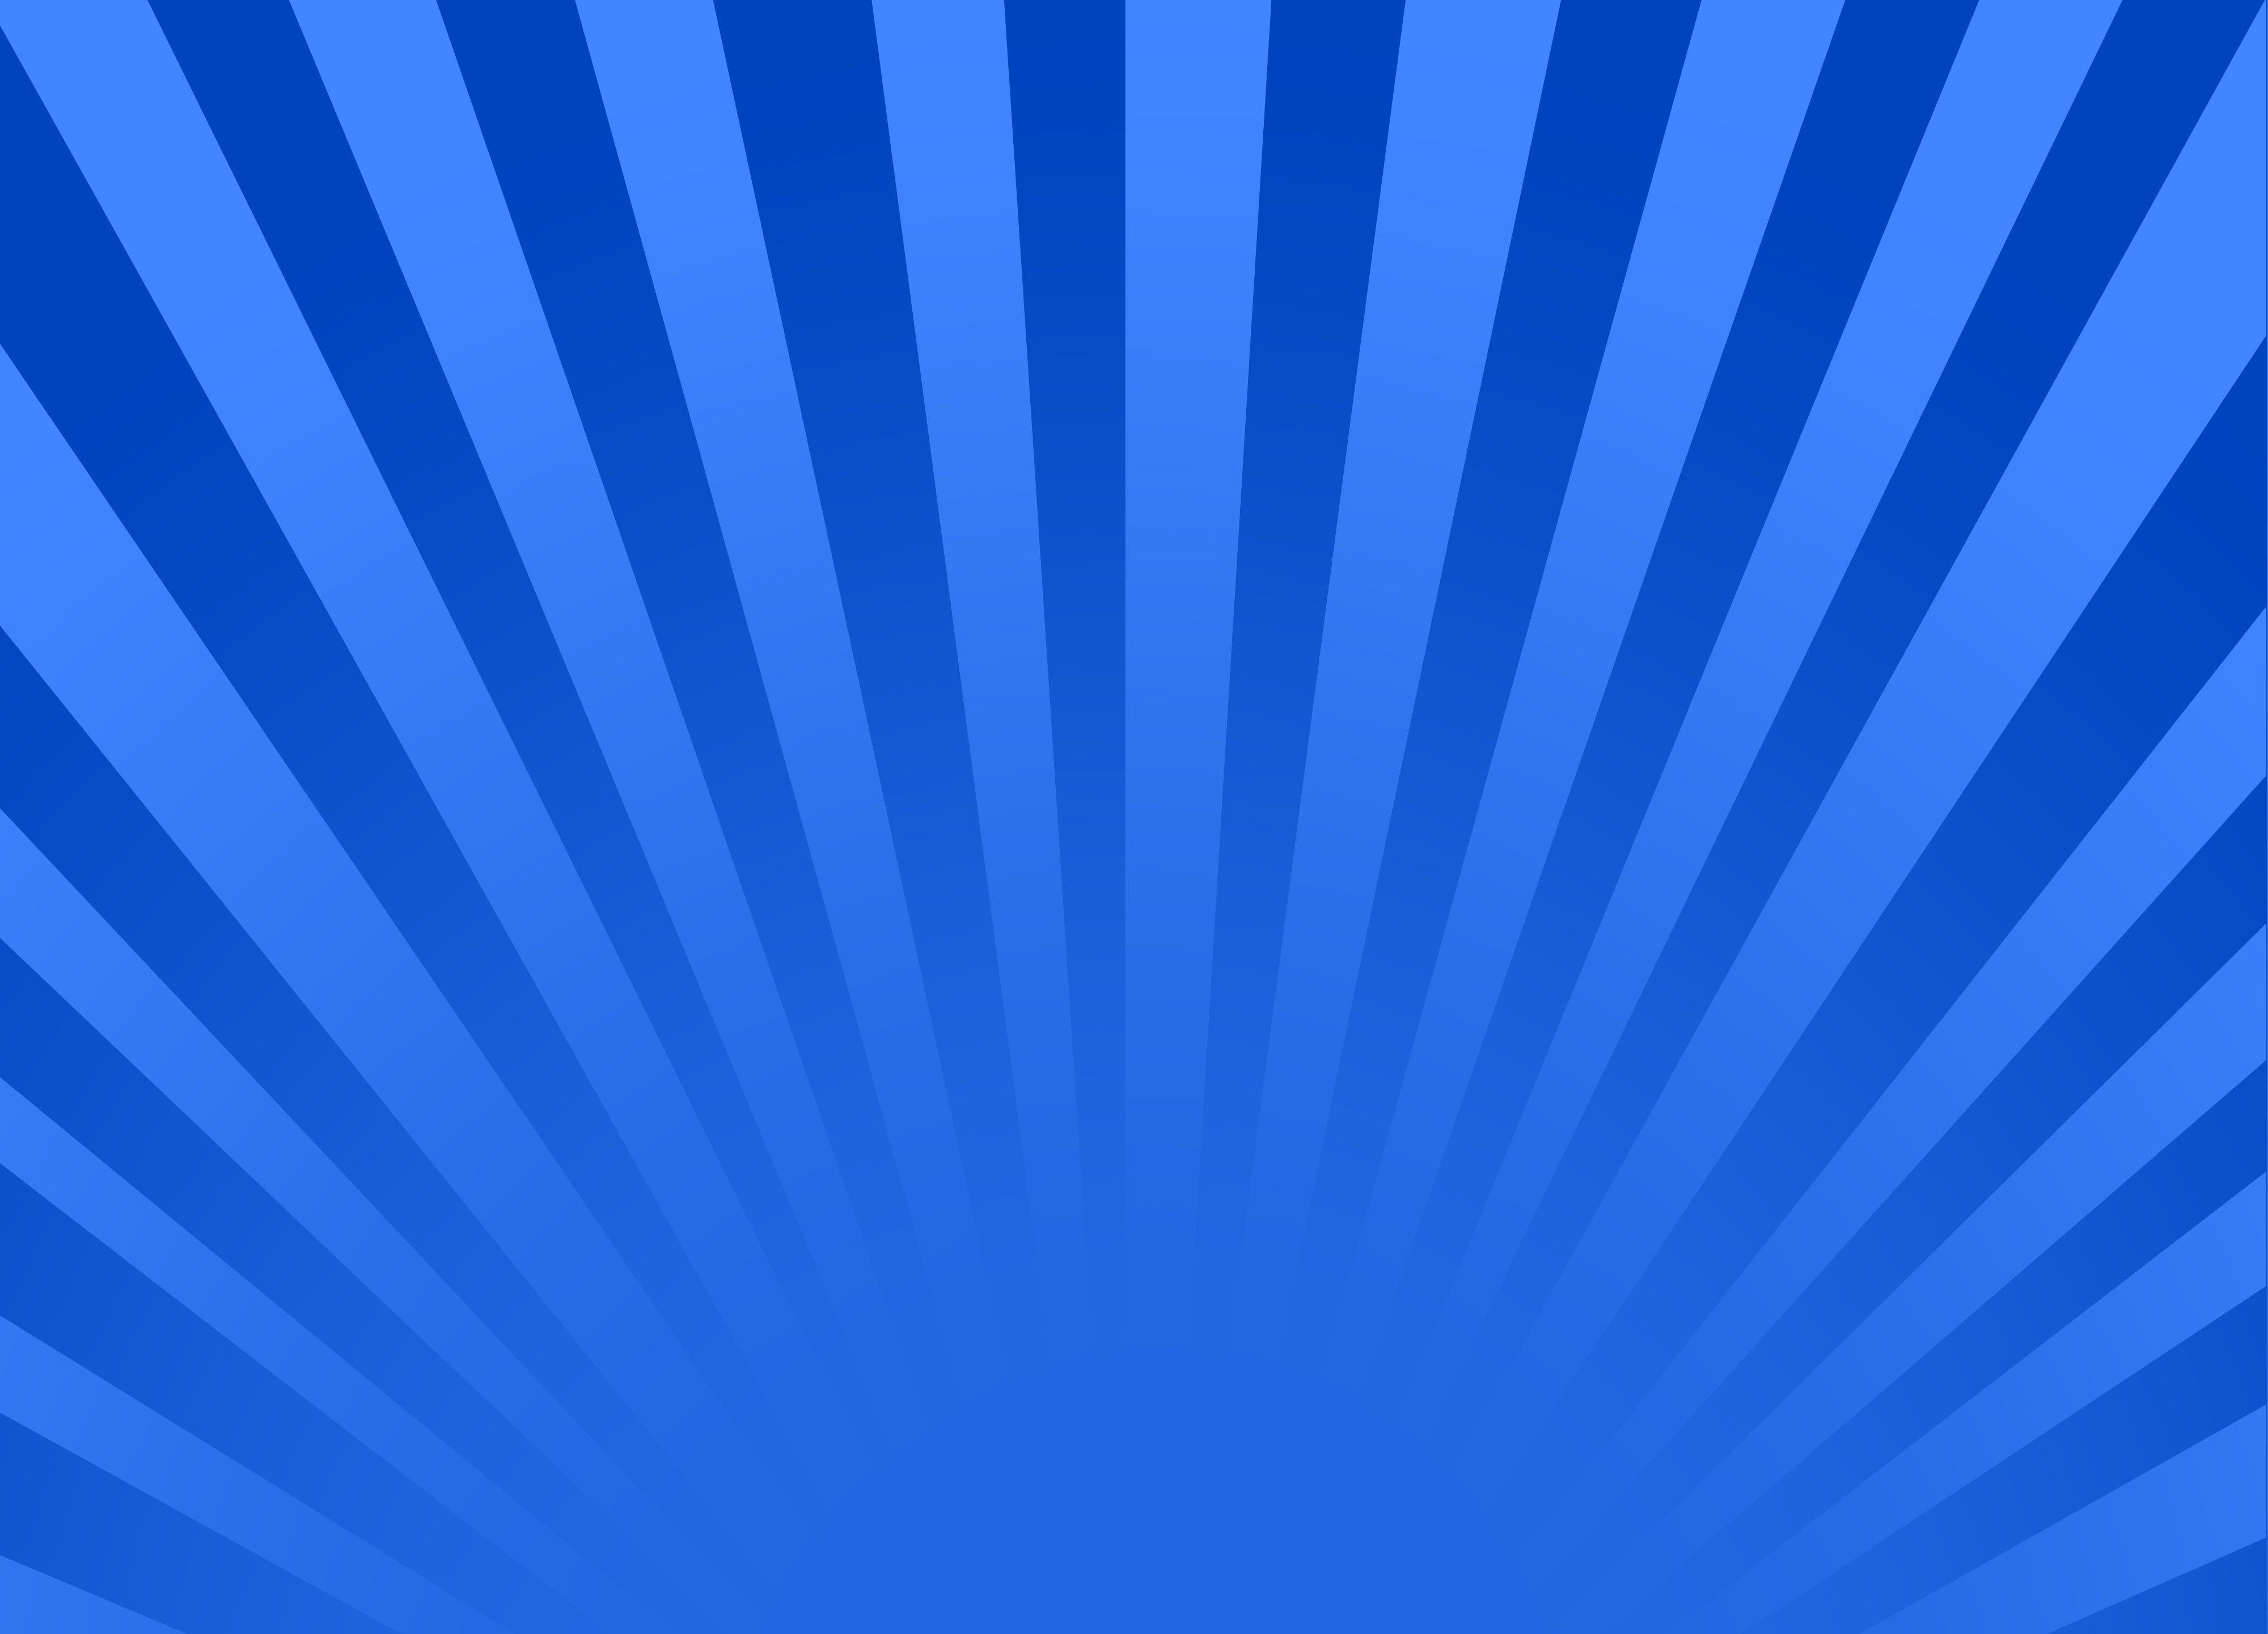 blue sun graphics find more stunning background images